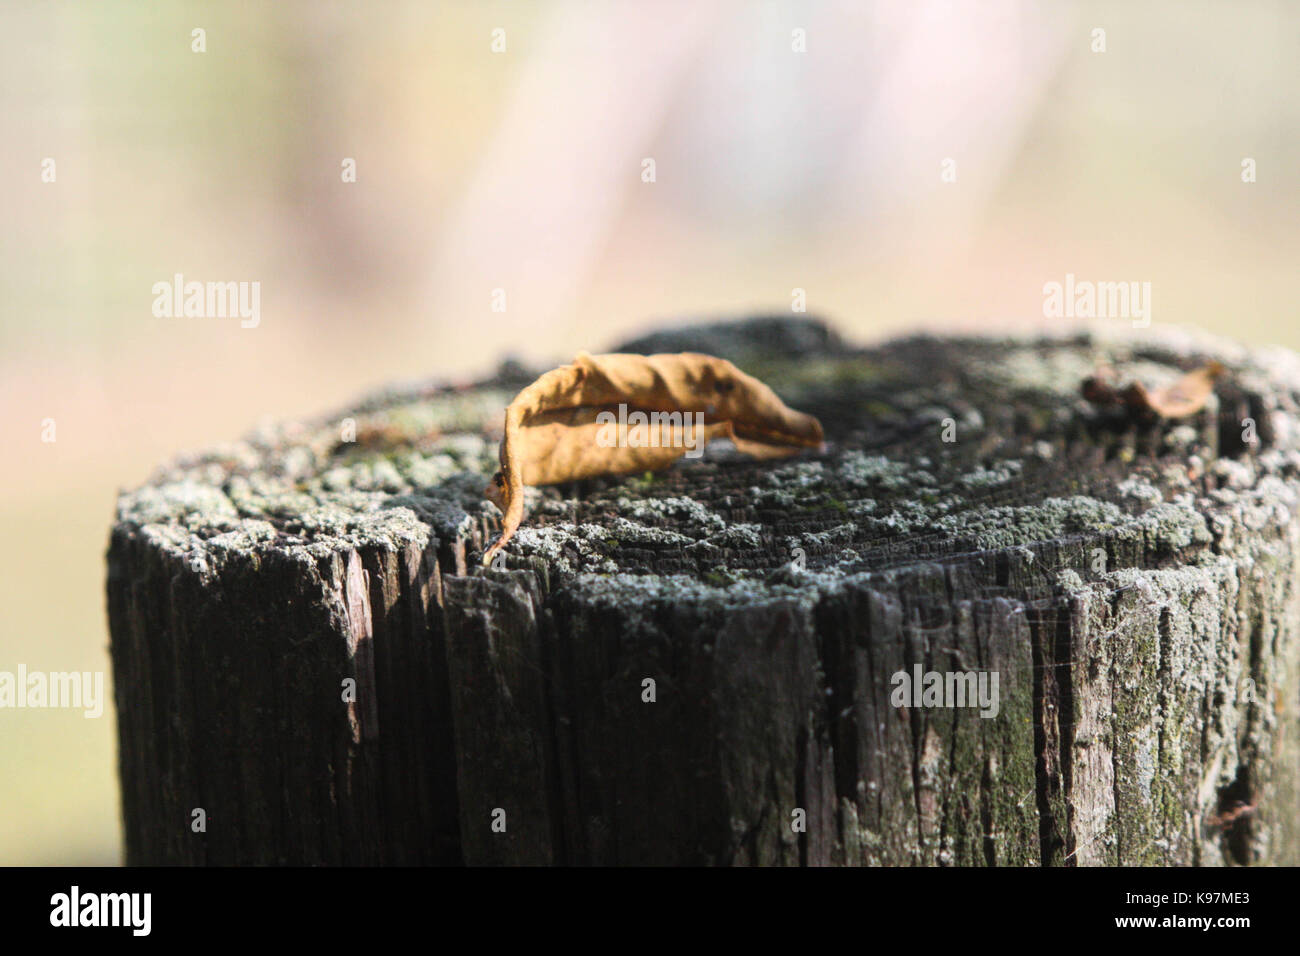 Leaf on a stump. Stock Photo